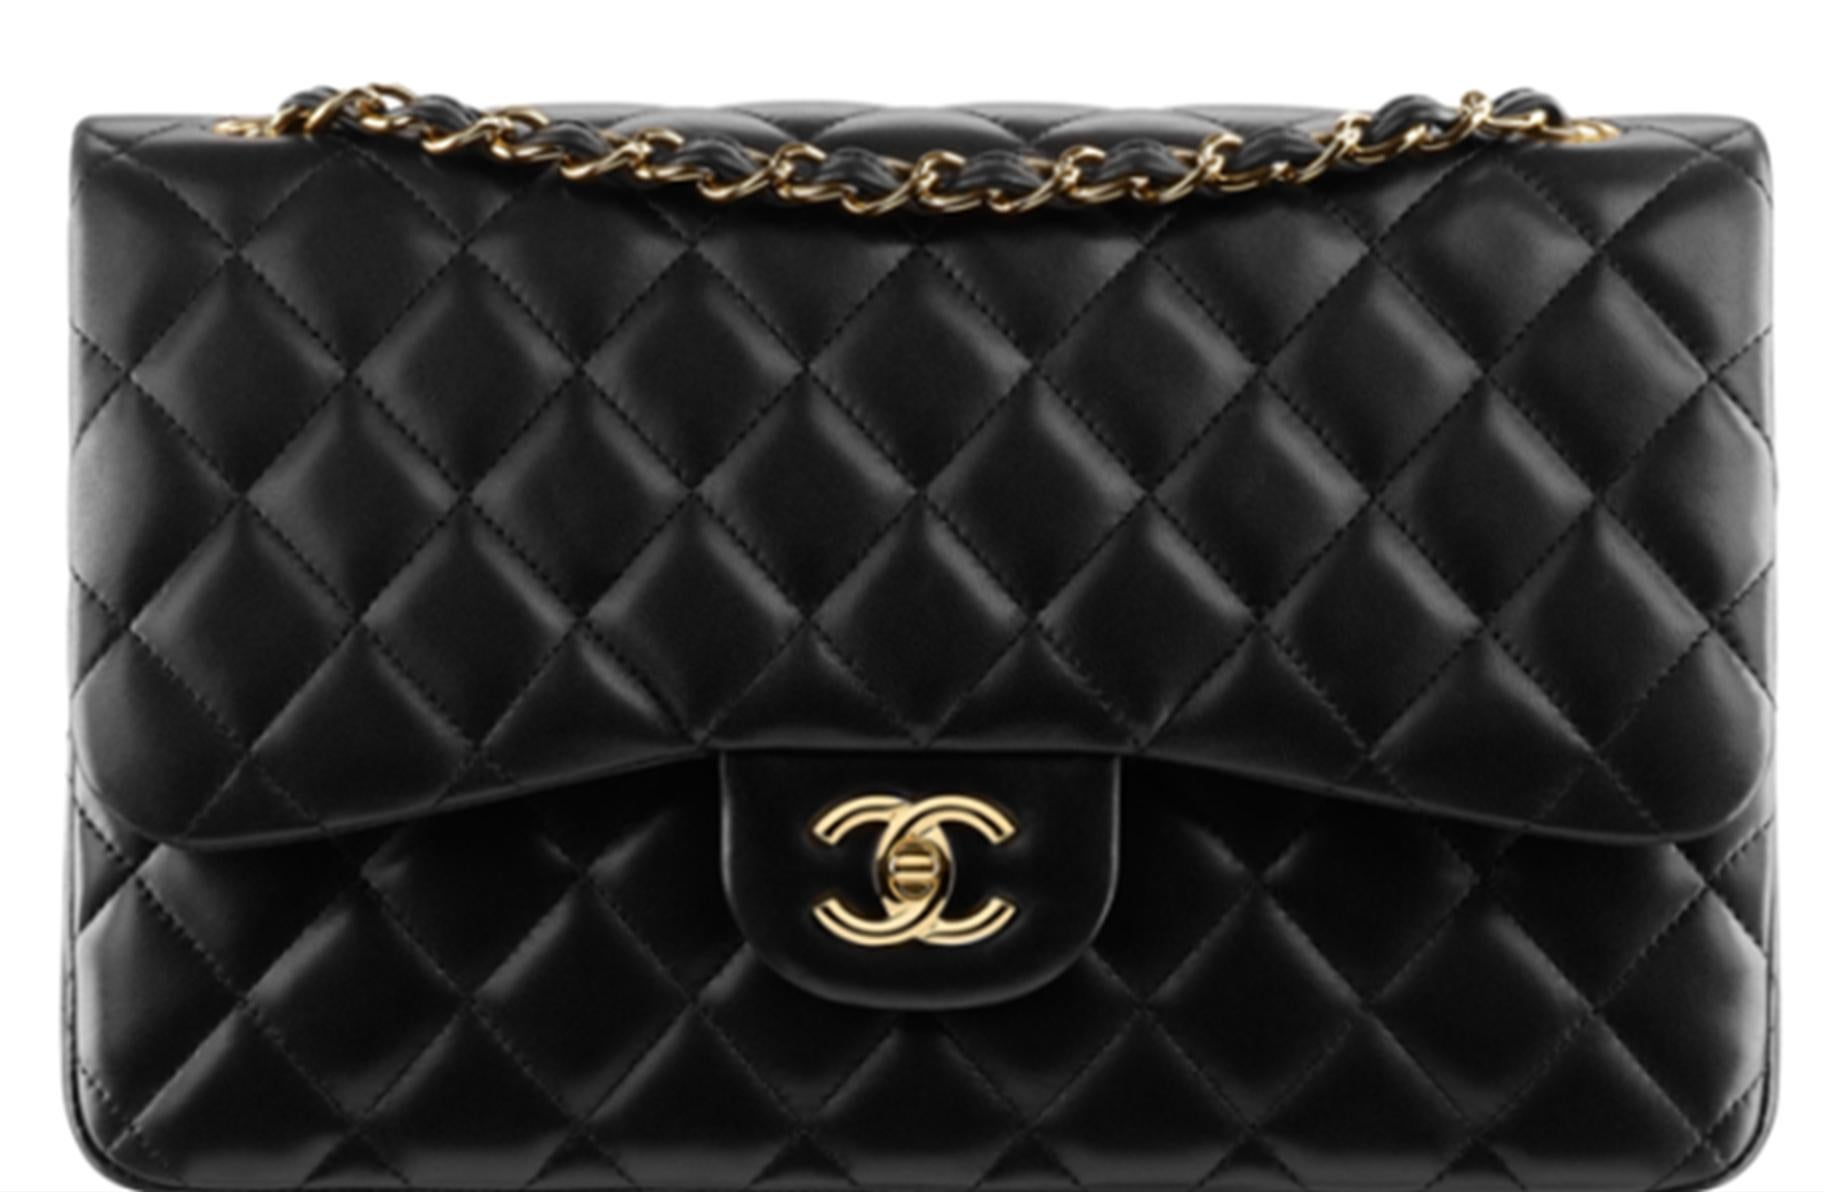 cfbf54e2f10e The best investment designer handbags to buy, from Chanel to Dior ...